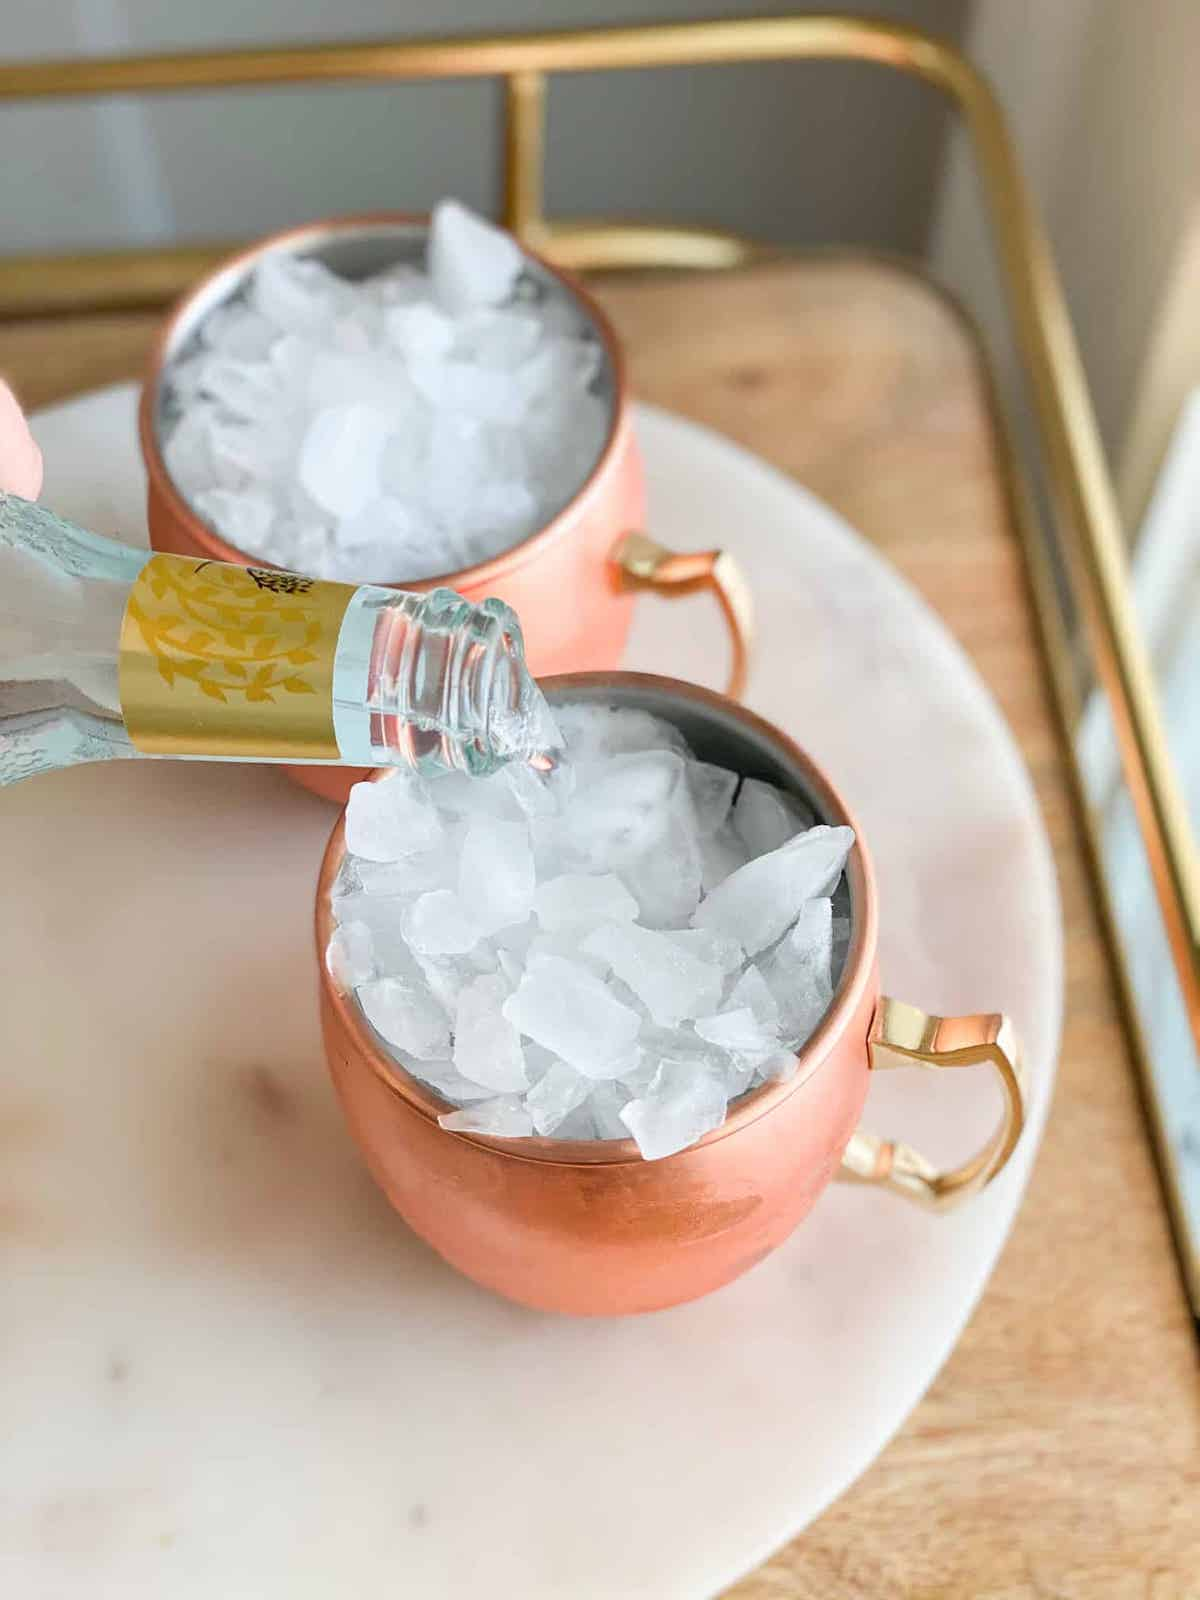 Ice in a copper cup with ginger beer being poured into a cup